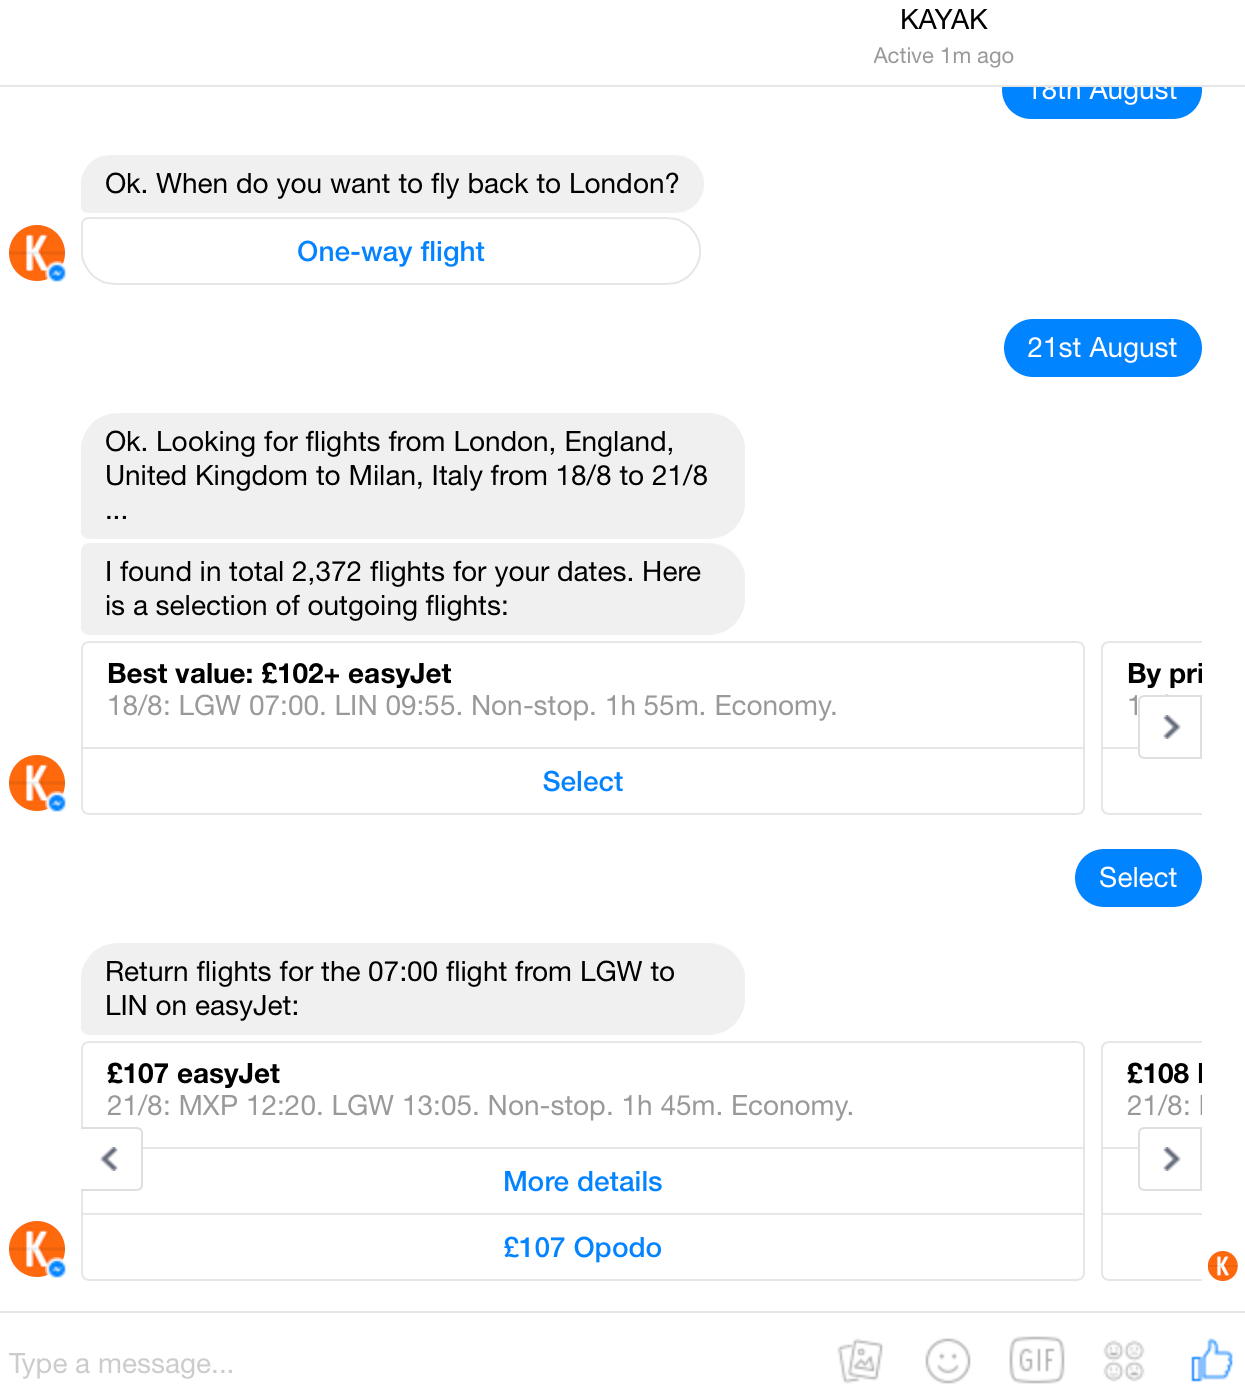 Kayak bot conversation 3